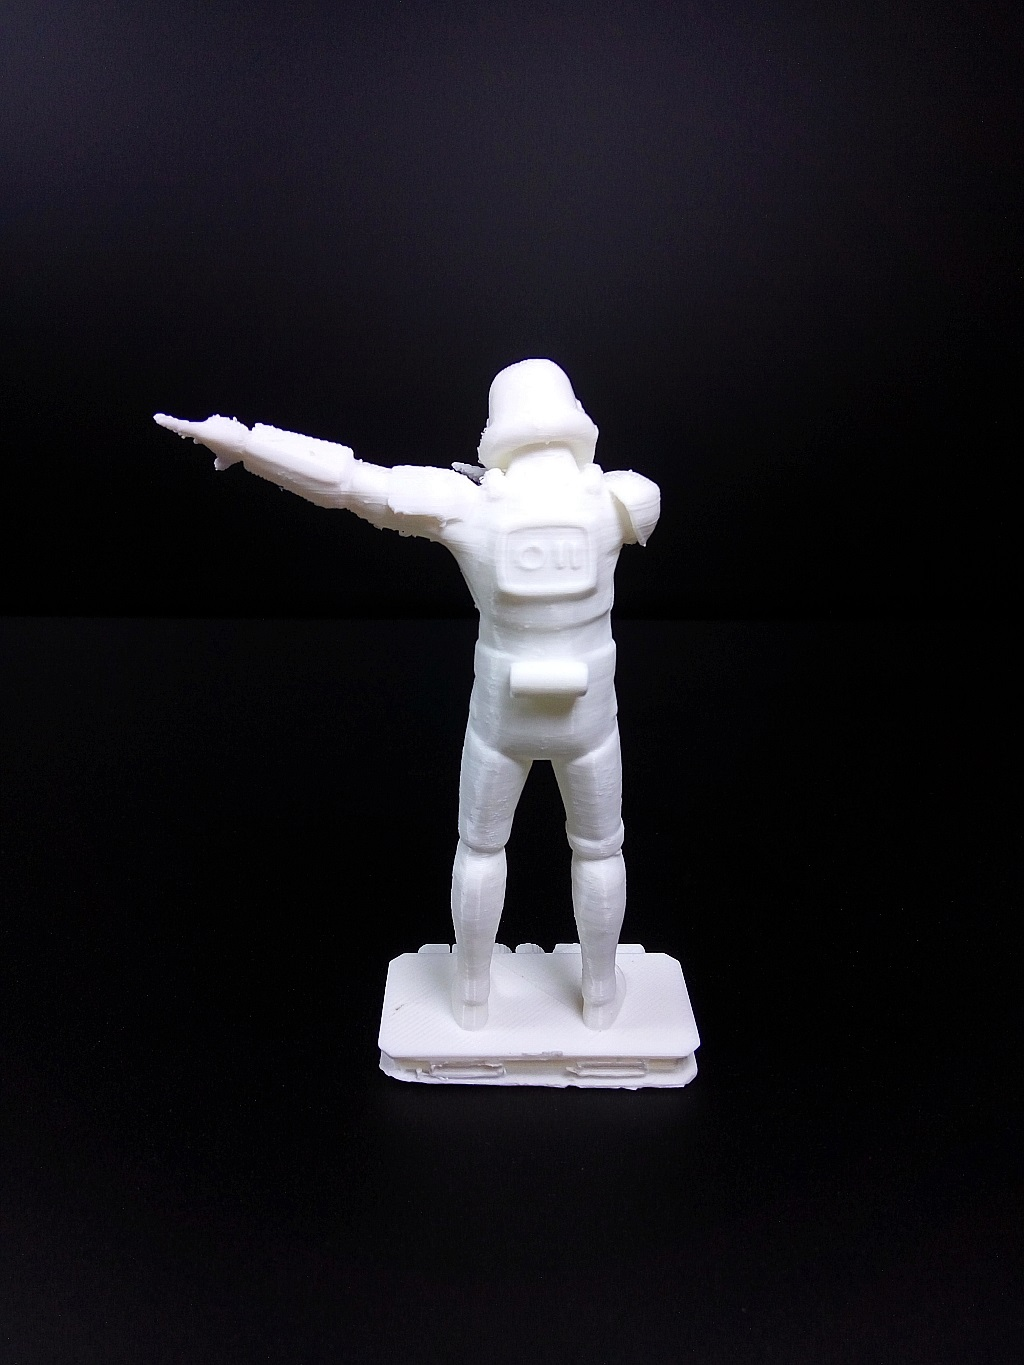 May the dab be with you image